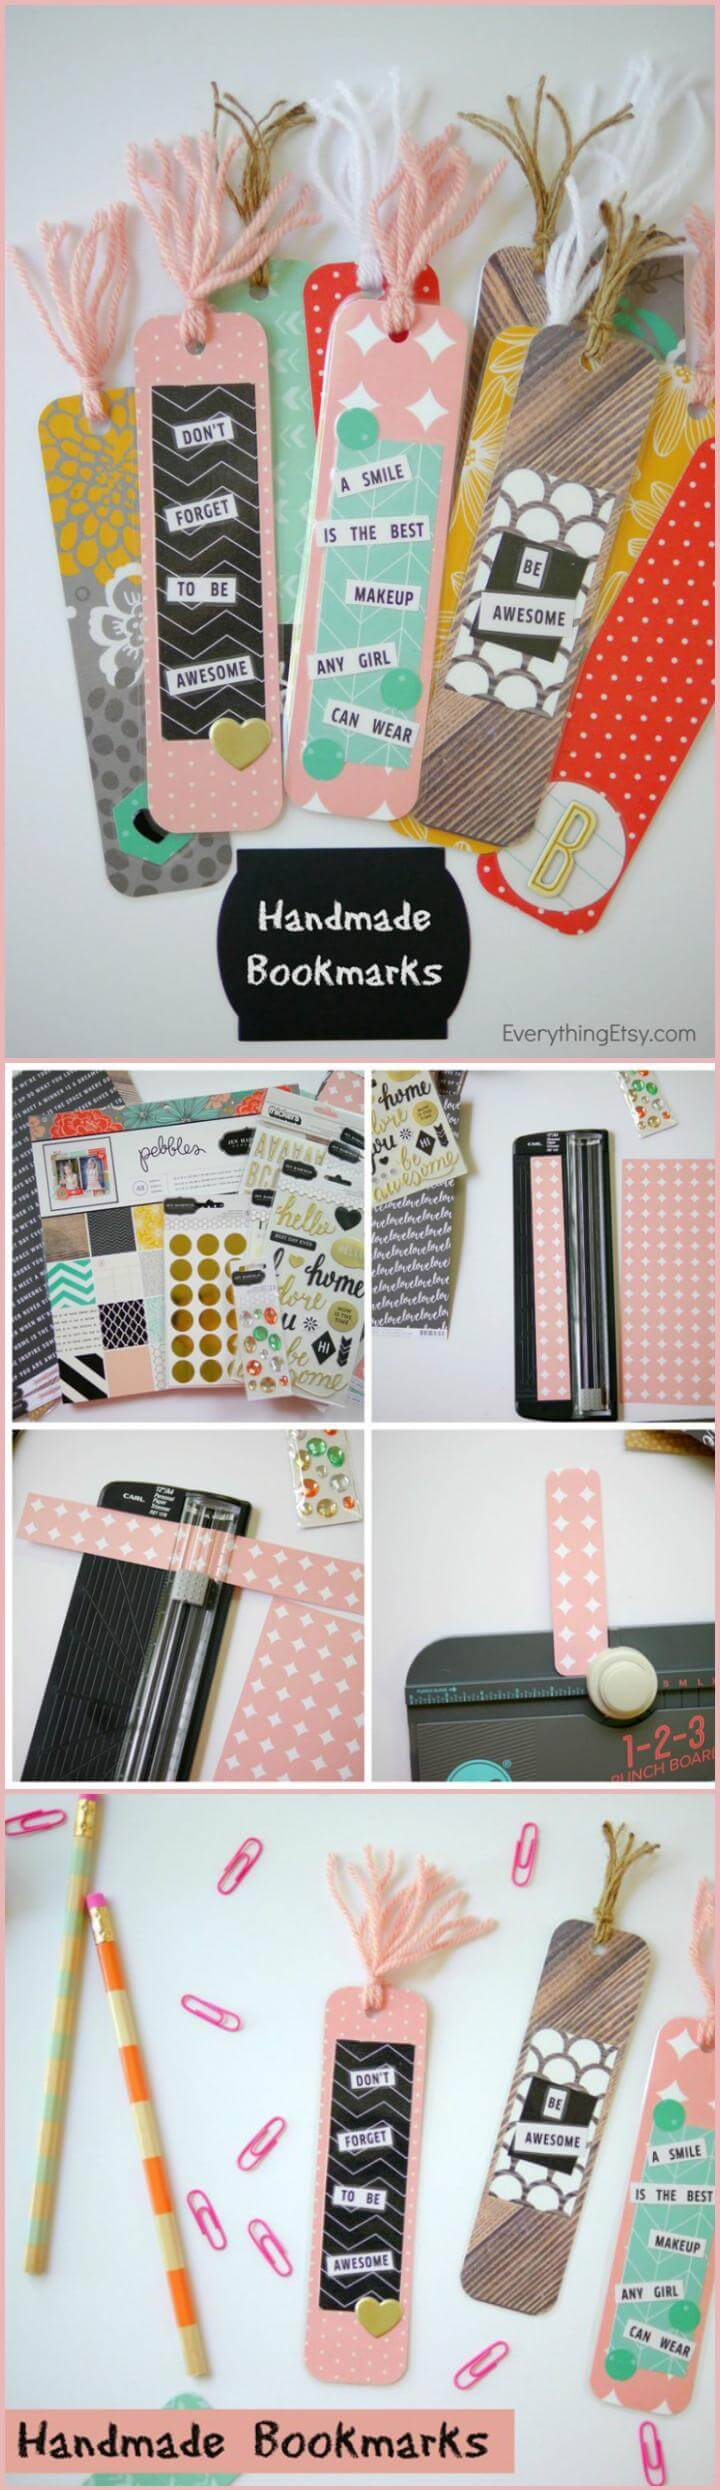 self-made easy bookmarks